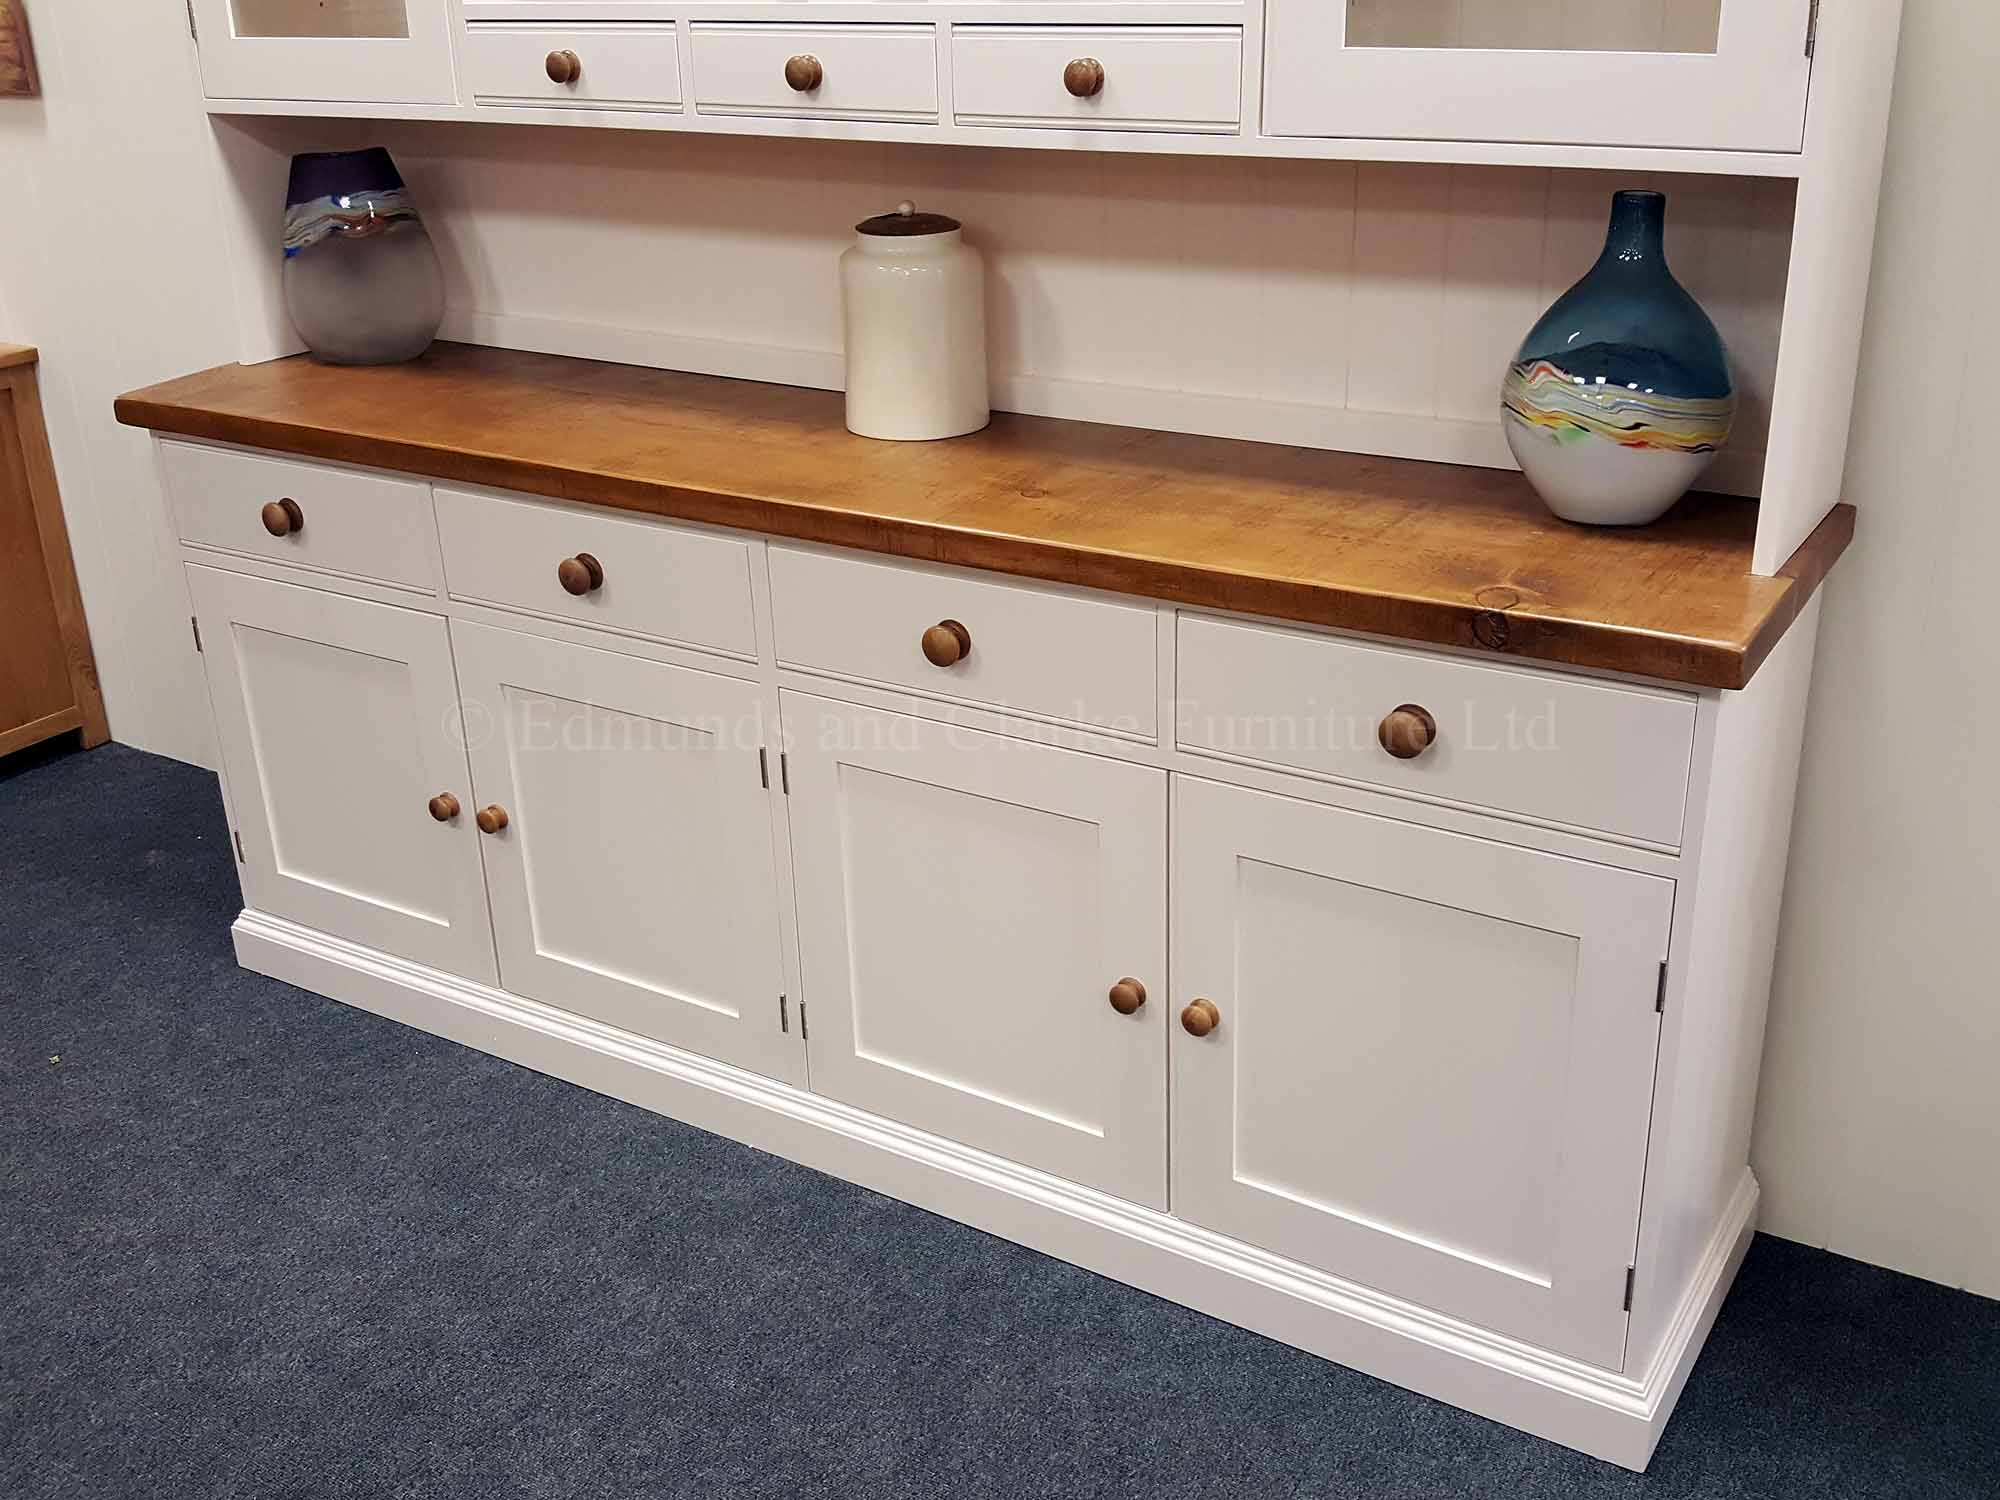 7ft Edmunds painted kitchen dresser, choose your paint colour handles tops